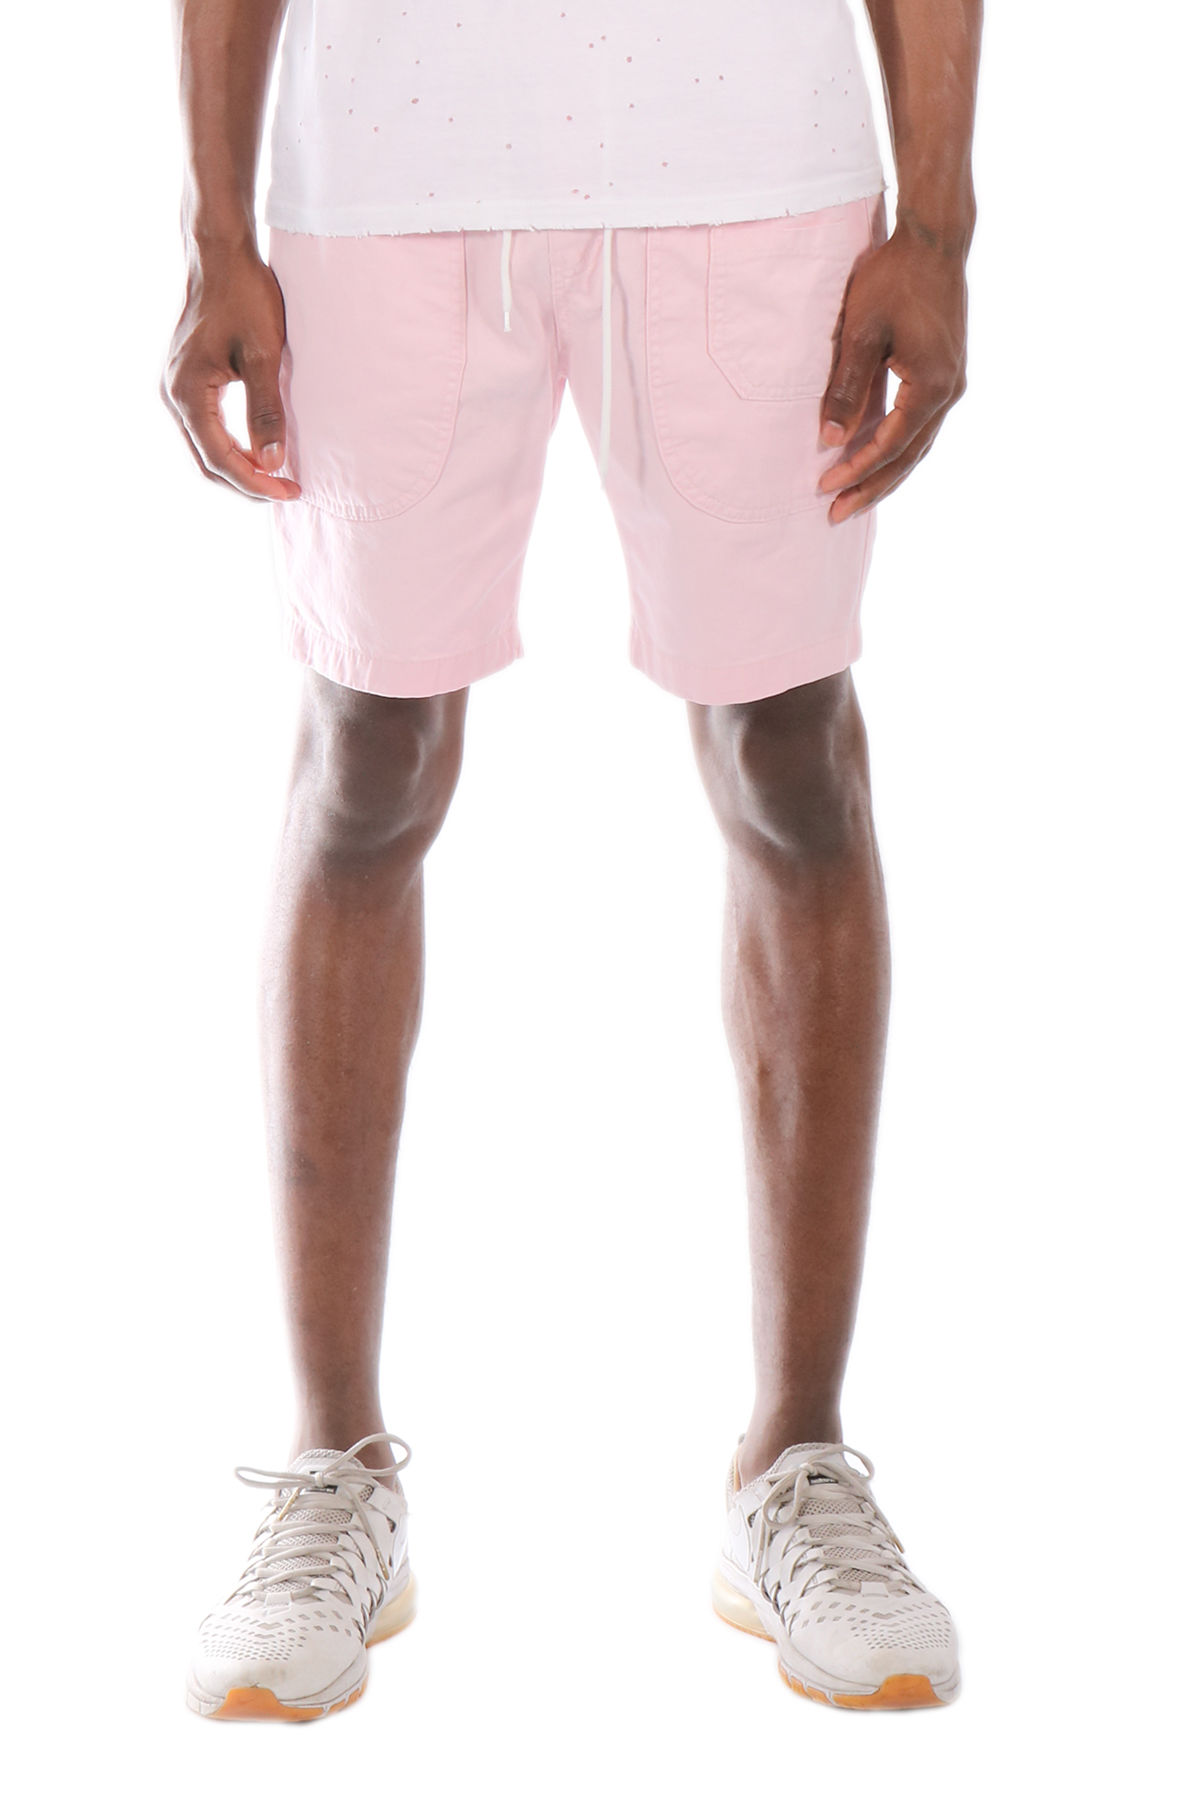 Image of The Allston Pastel Color Cotton Twill Elastic Banded Shorts in Pastel Pink